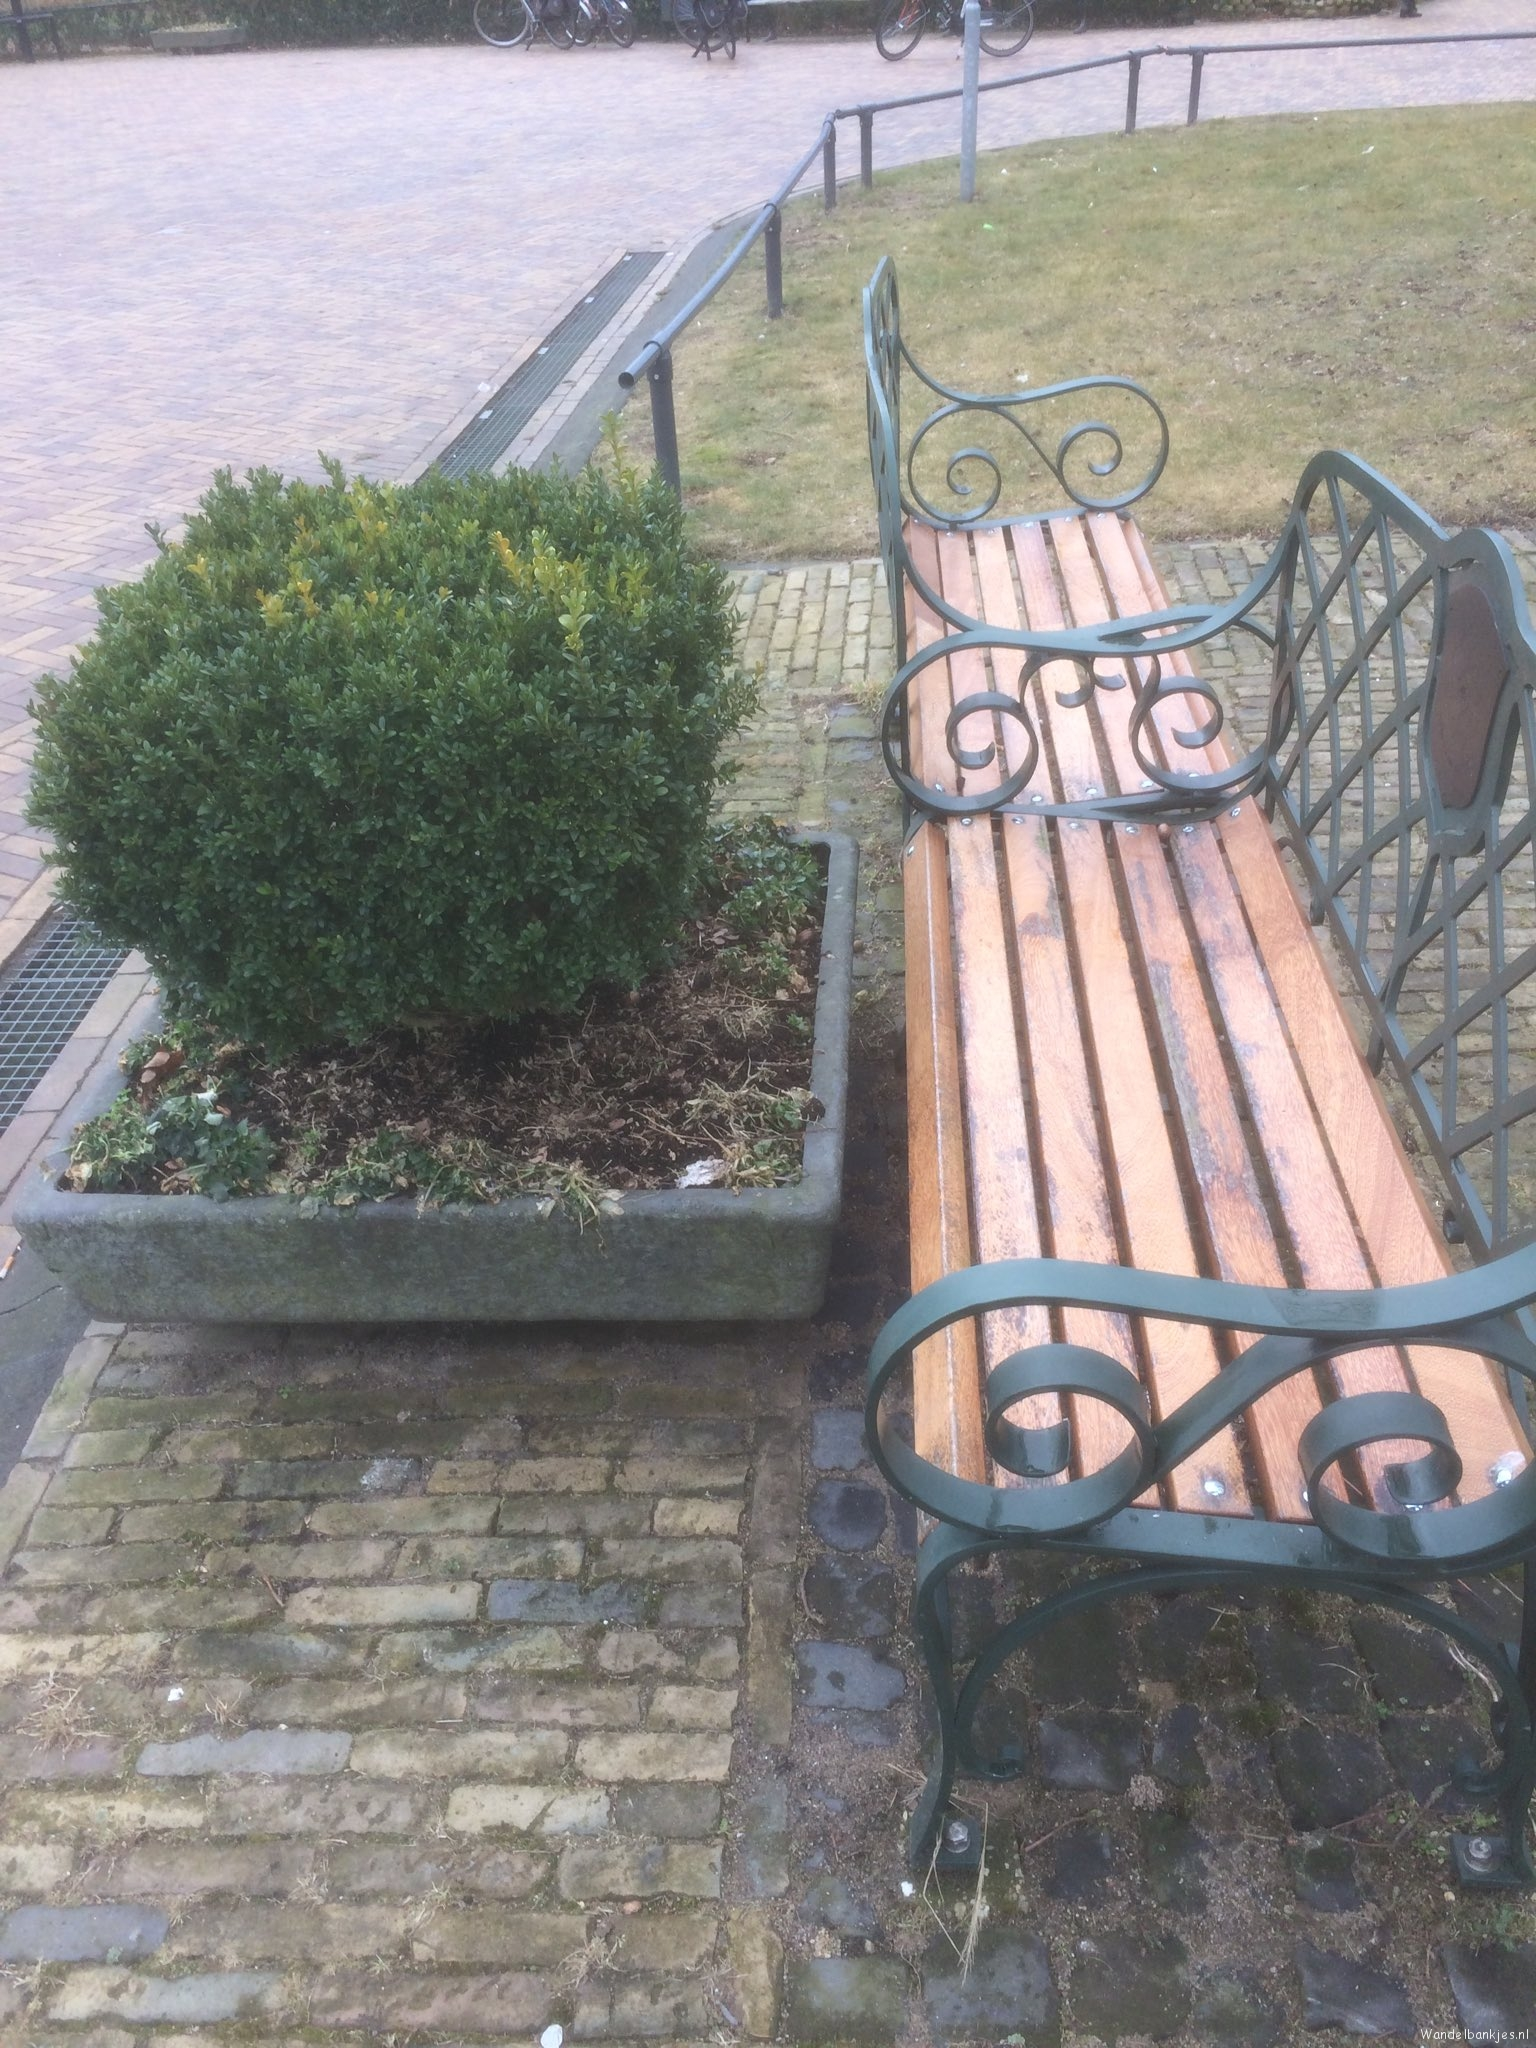 rt-femkenijveldt-and-so-says-the-municipality-there-must-the-flower-box-hinges-walking-benches-https-t-co-lontlti0e7